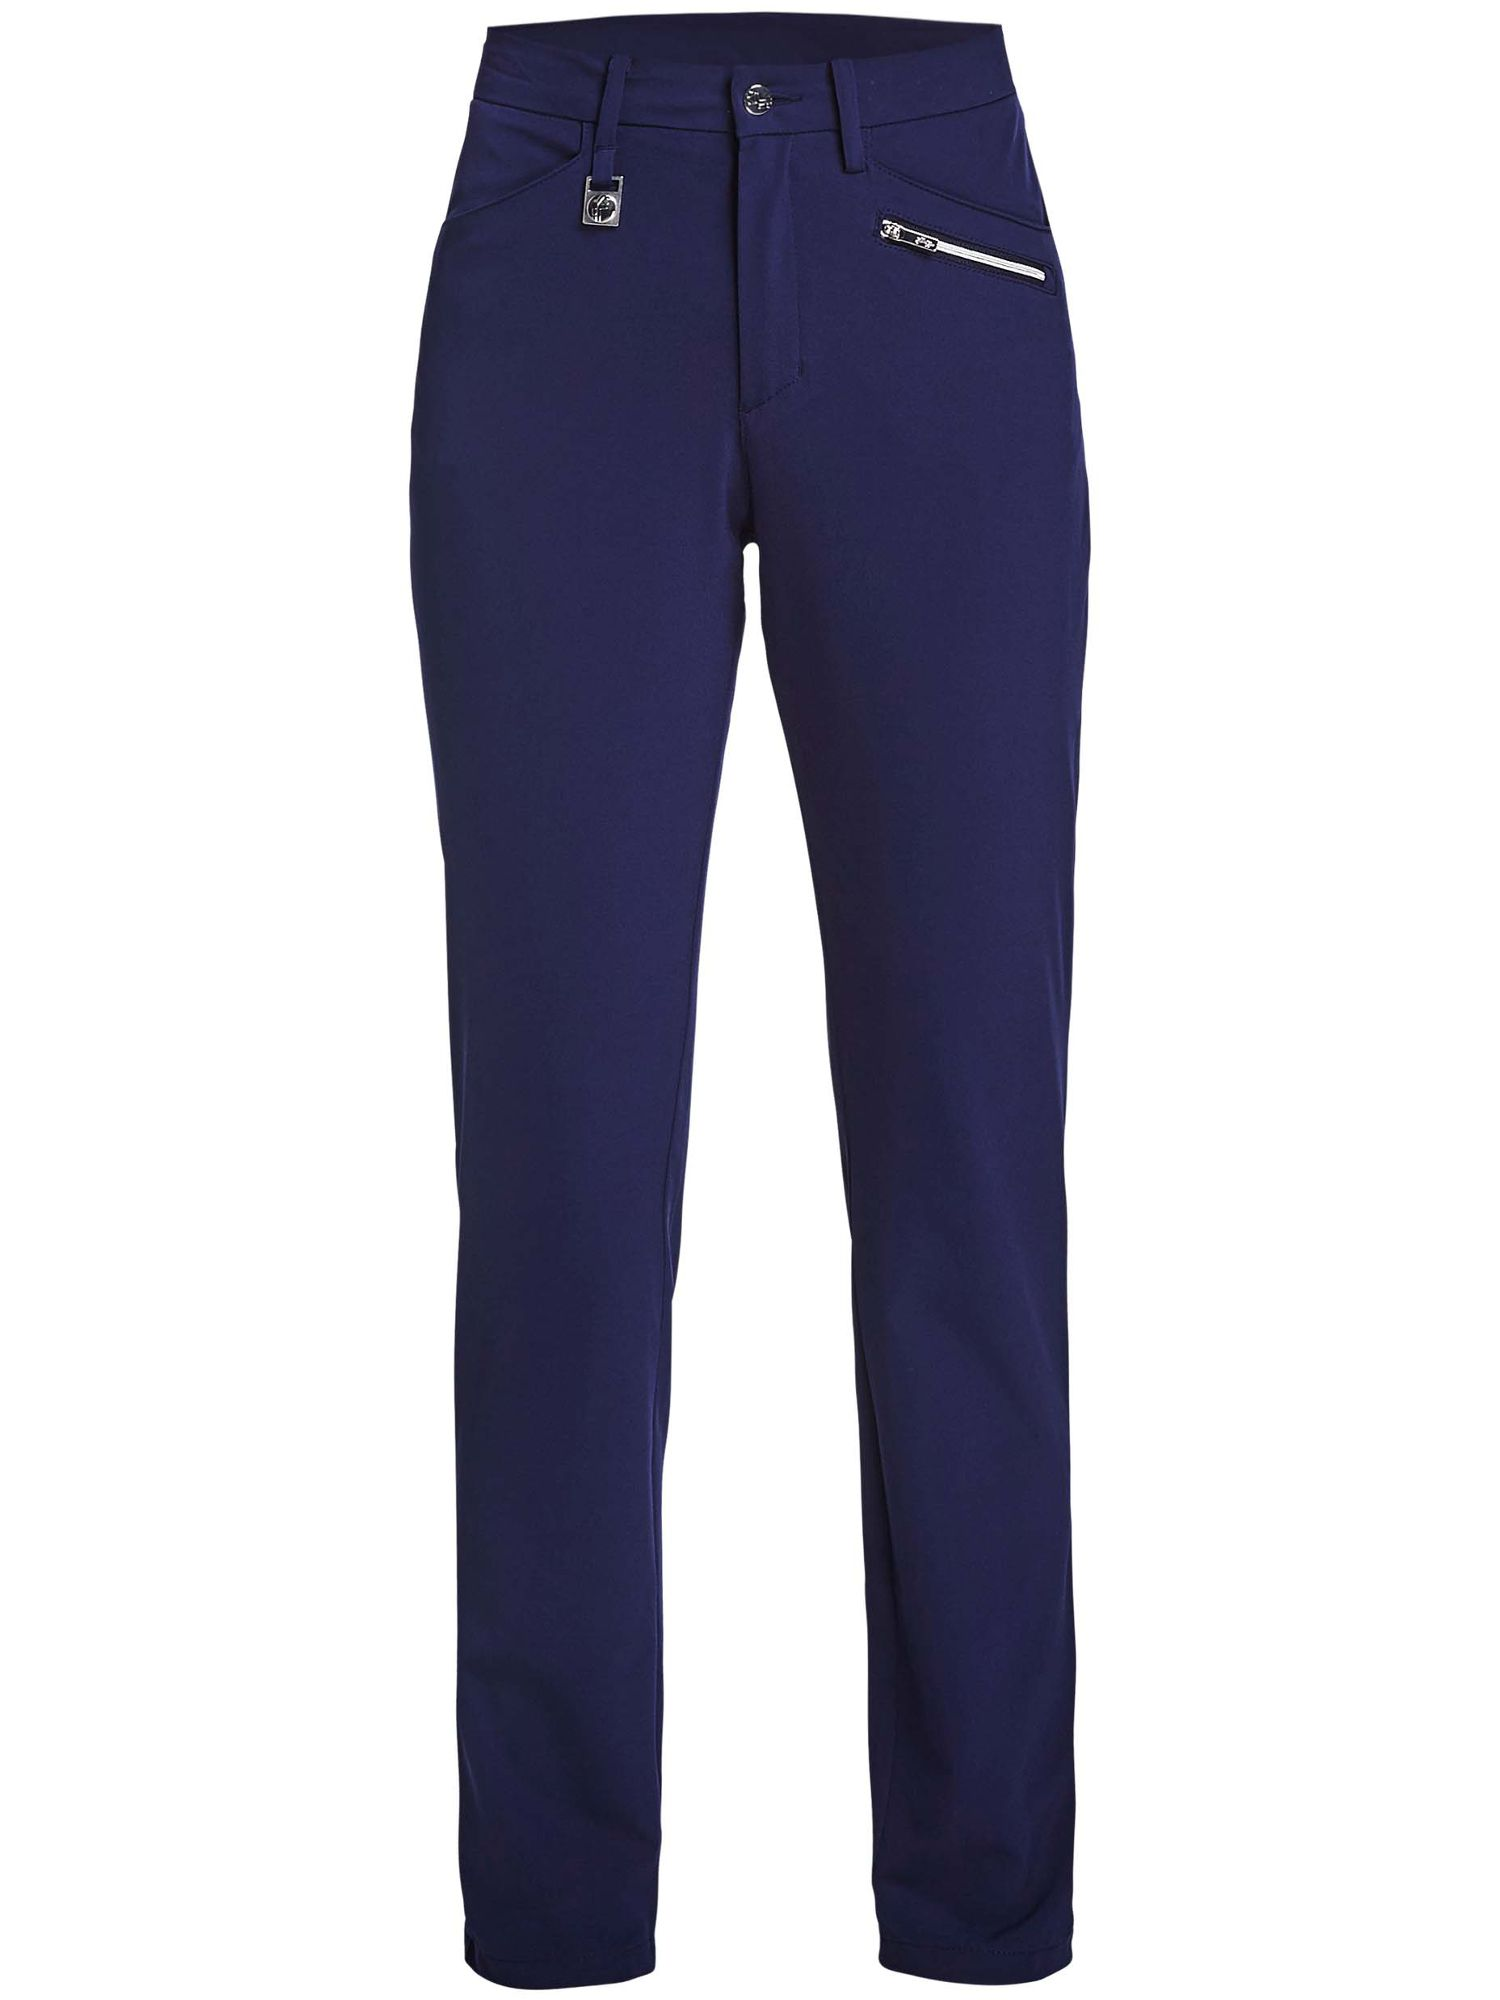 Rohnisch Comfort Stretch Trouser, Blue